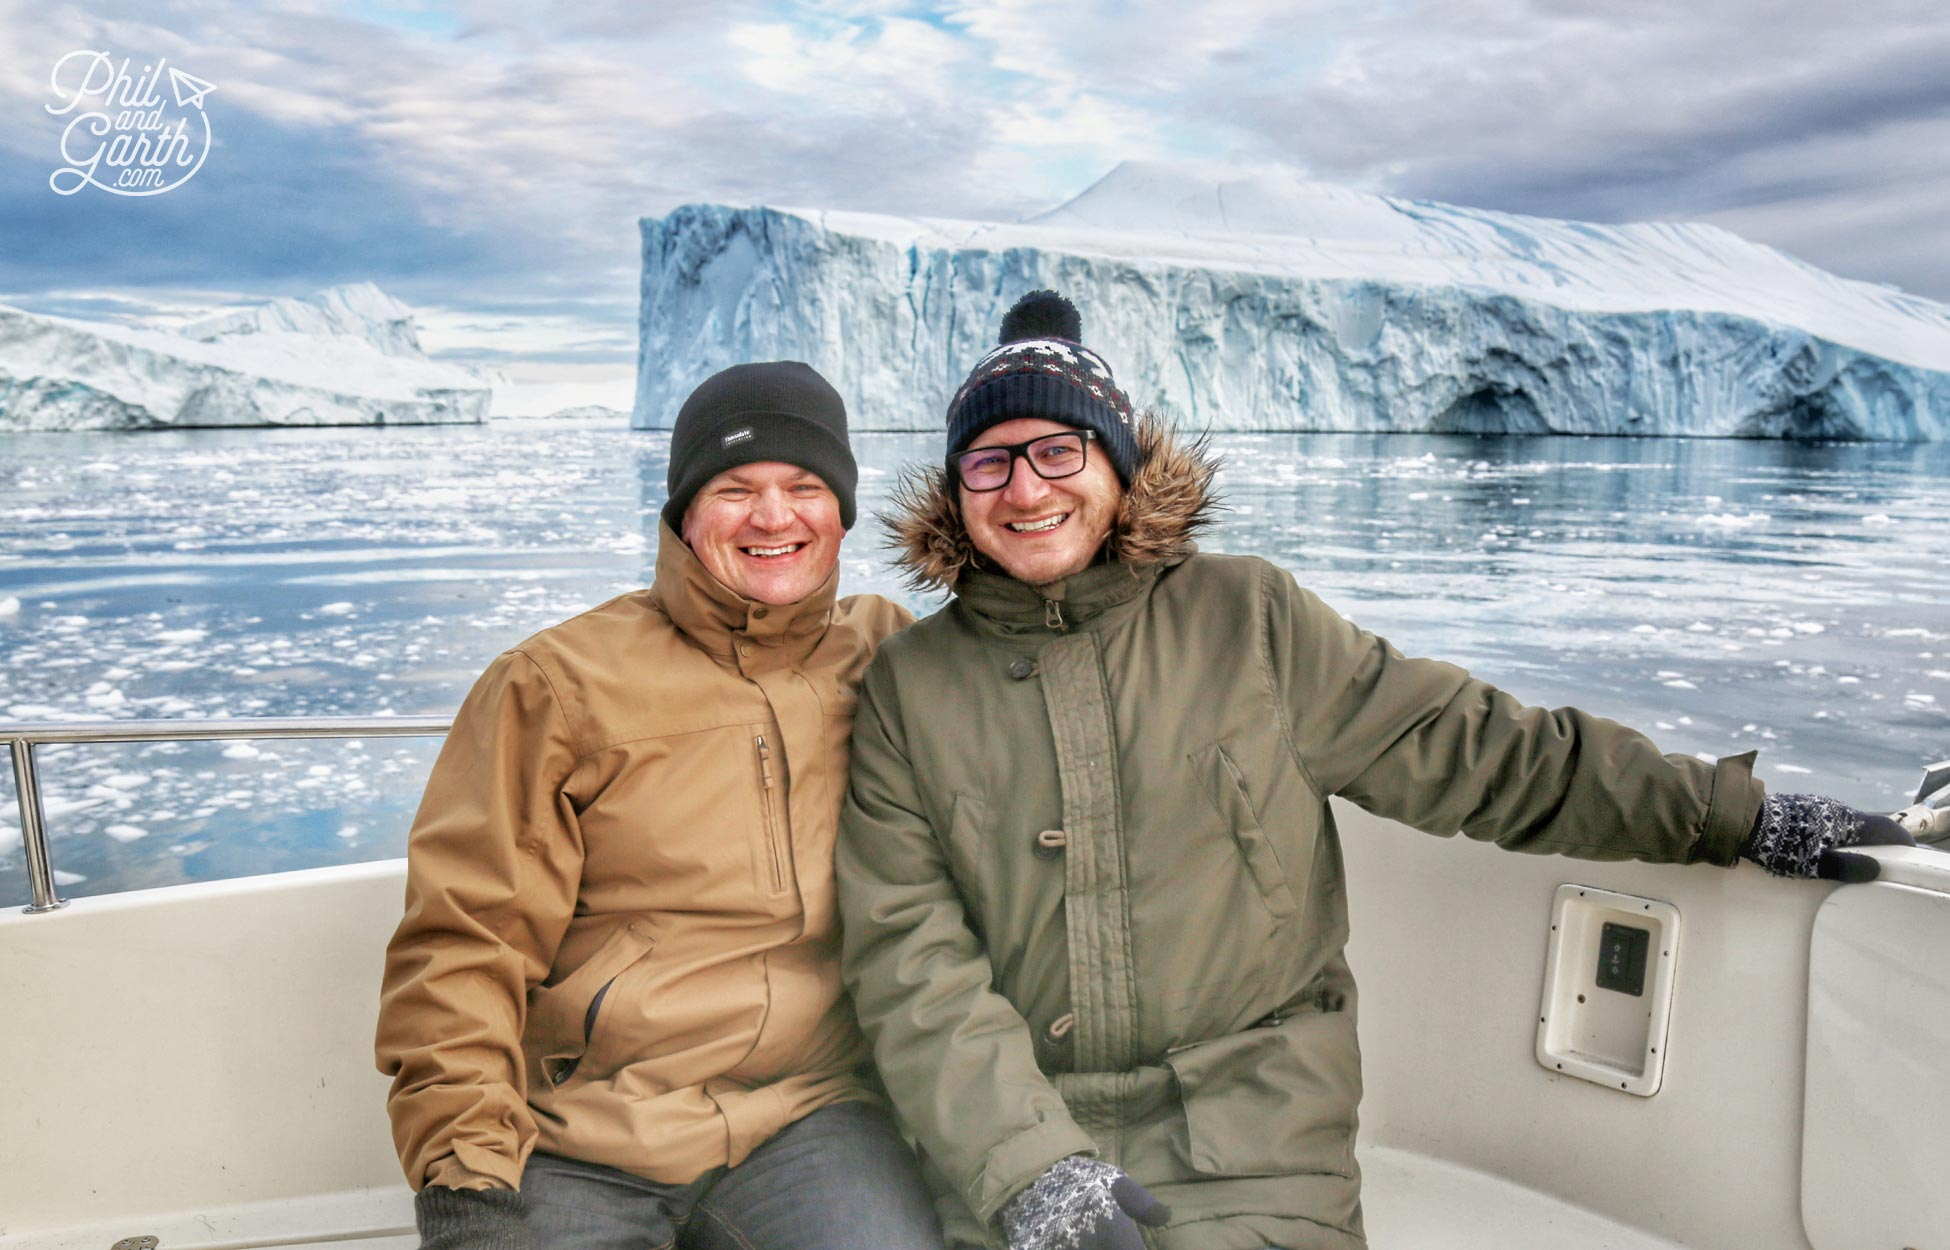 Phil and Garth wrapped up warm in Disko Bay Ilulissat, Greenland